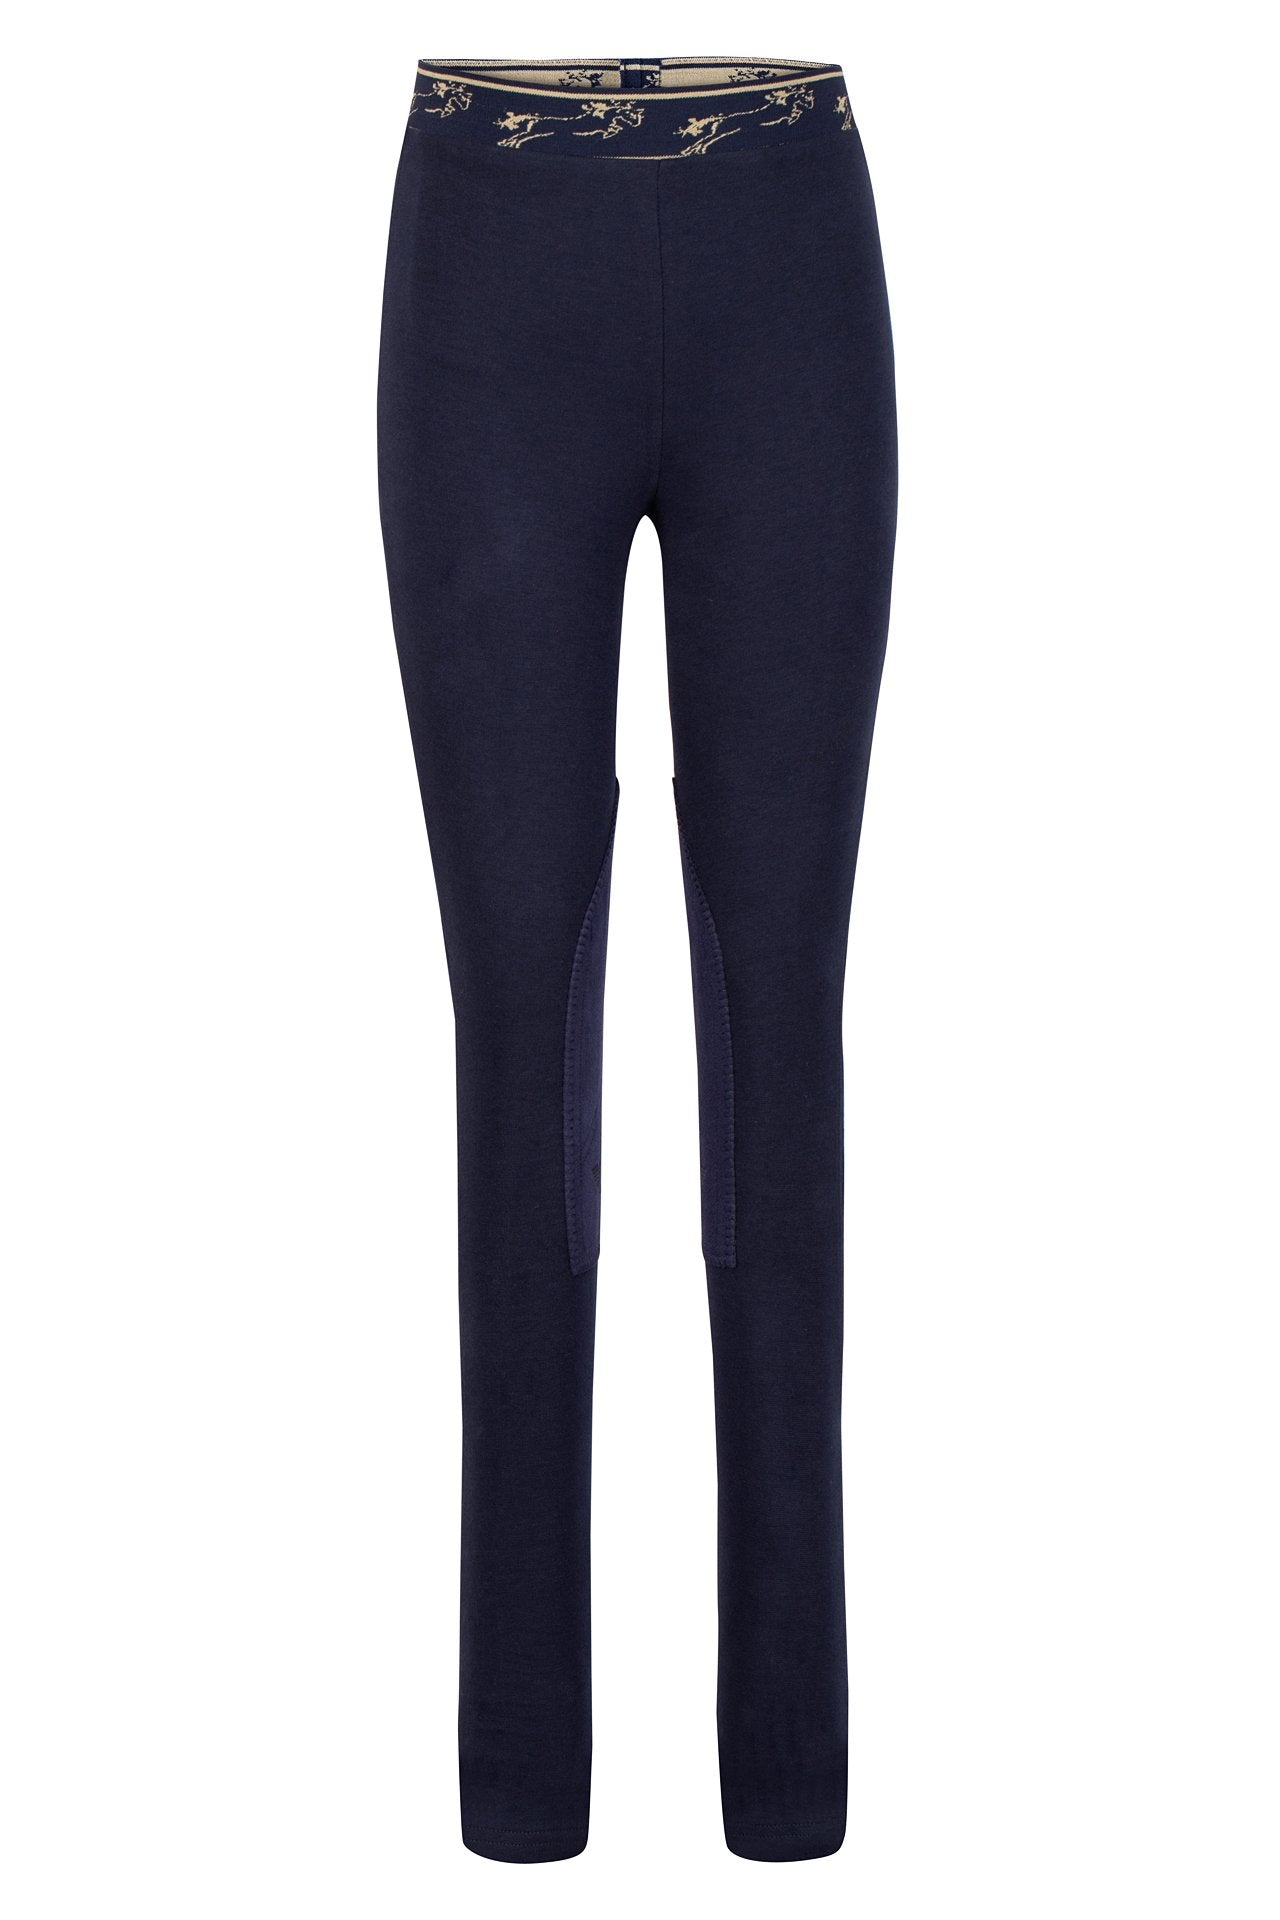 Children's Cotton Schooler Jodhpurs - TuffRider - Breeches.com